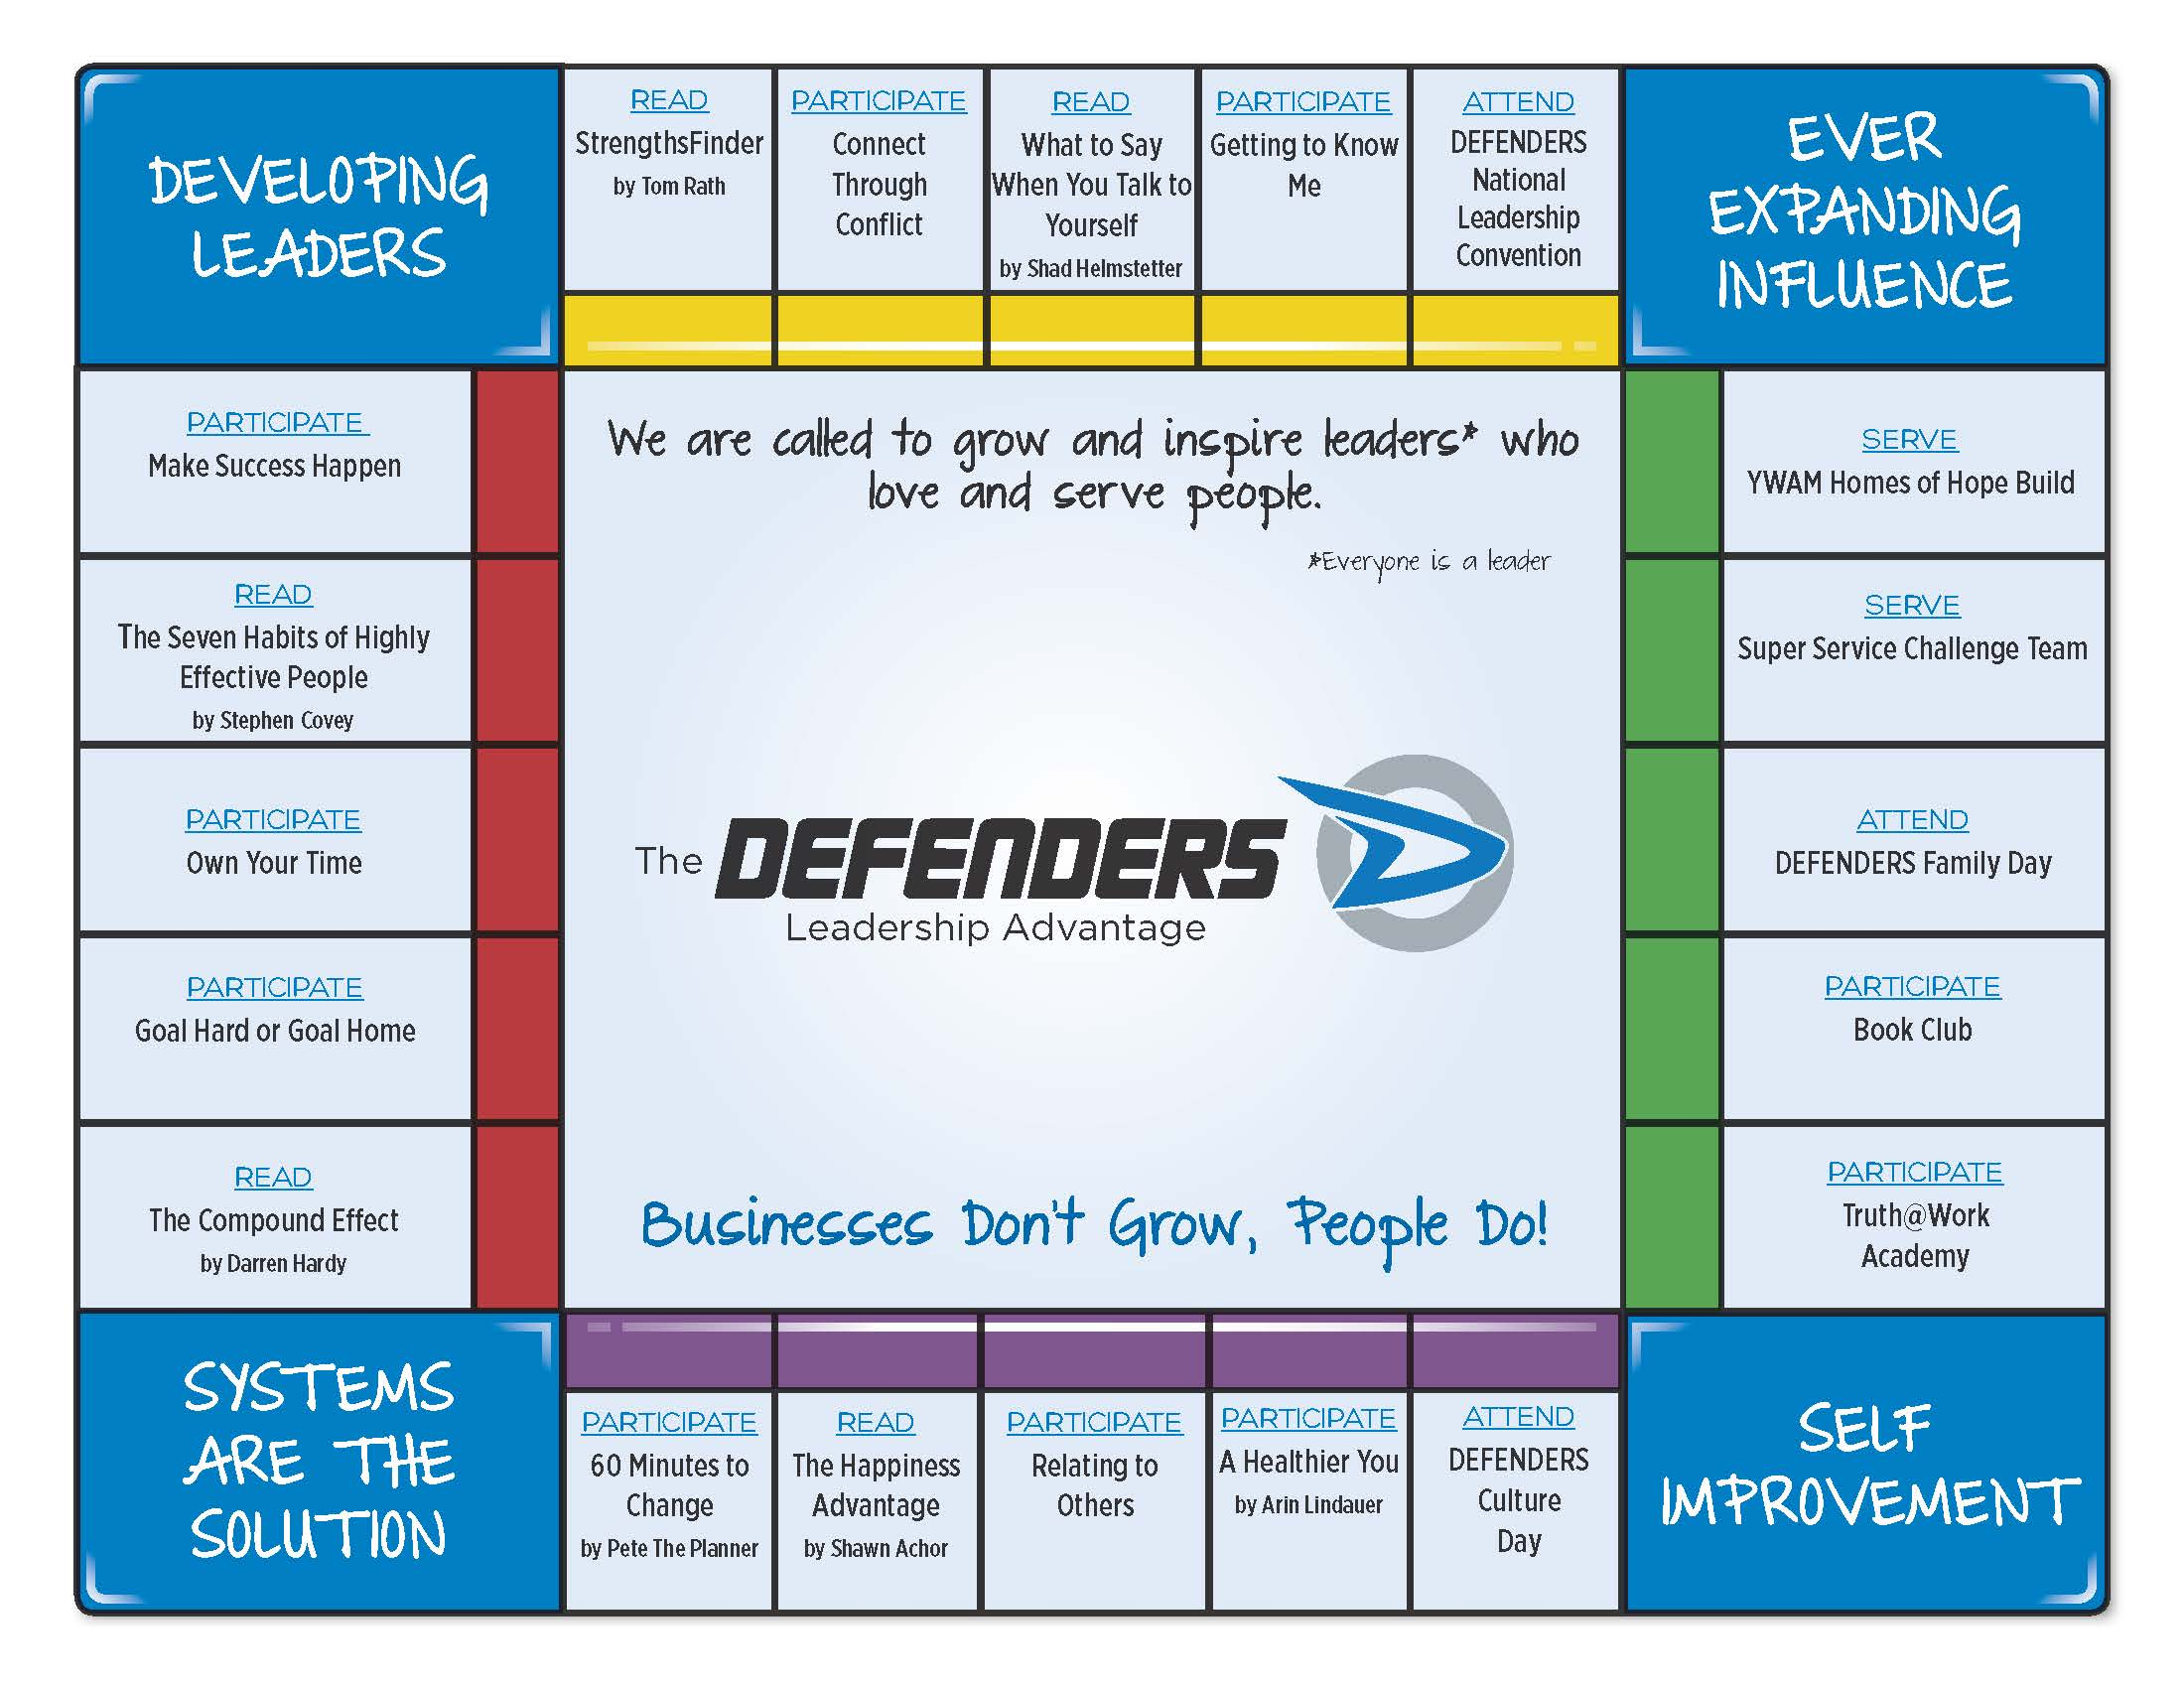 Elevate Culture Defenders Grows Leaders With Intention